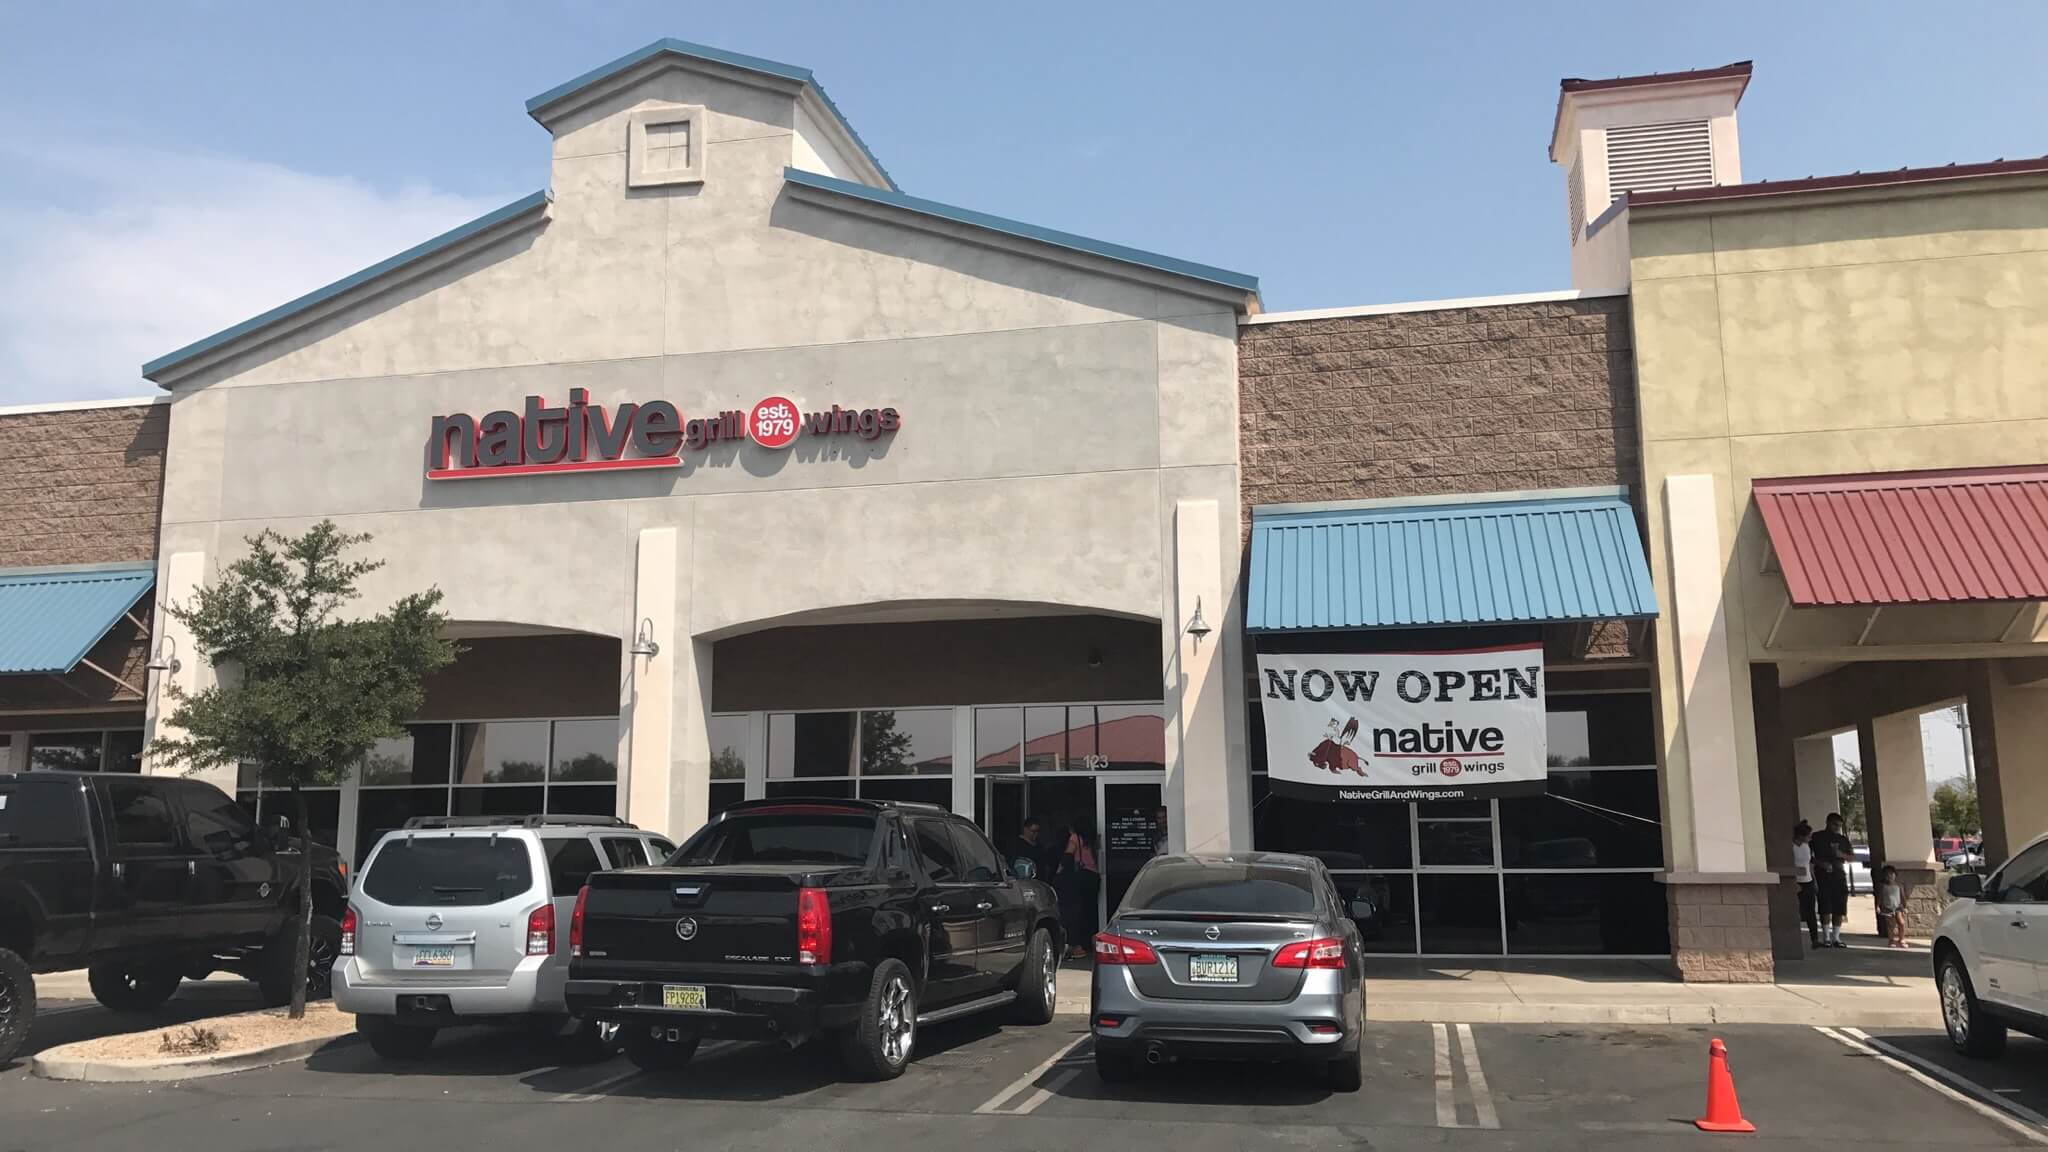 Native Grill & Wings Laveen, AZ Restaurant Location